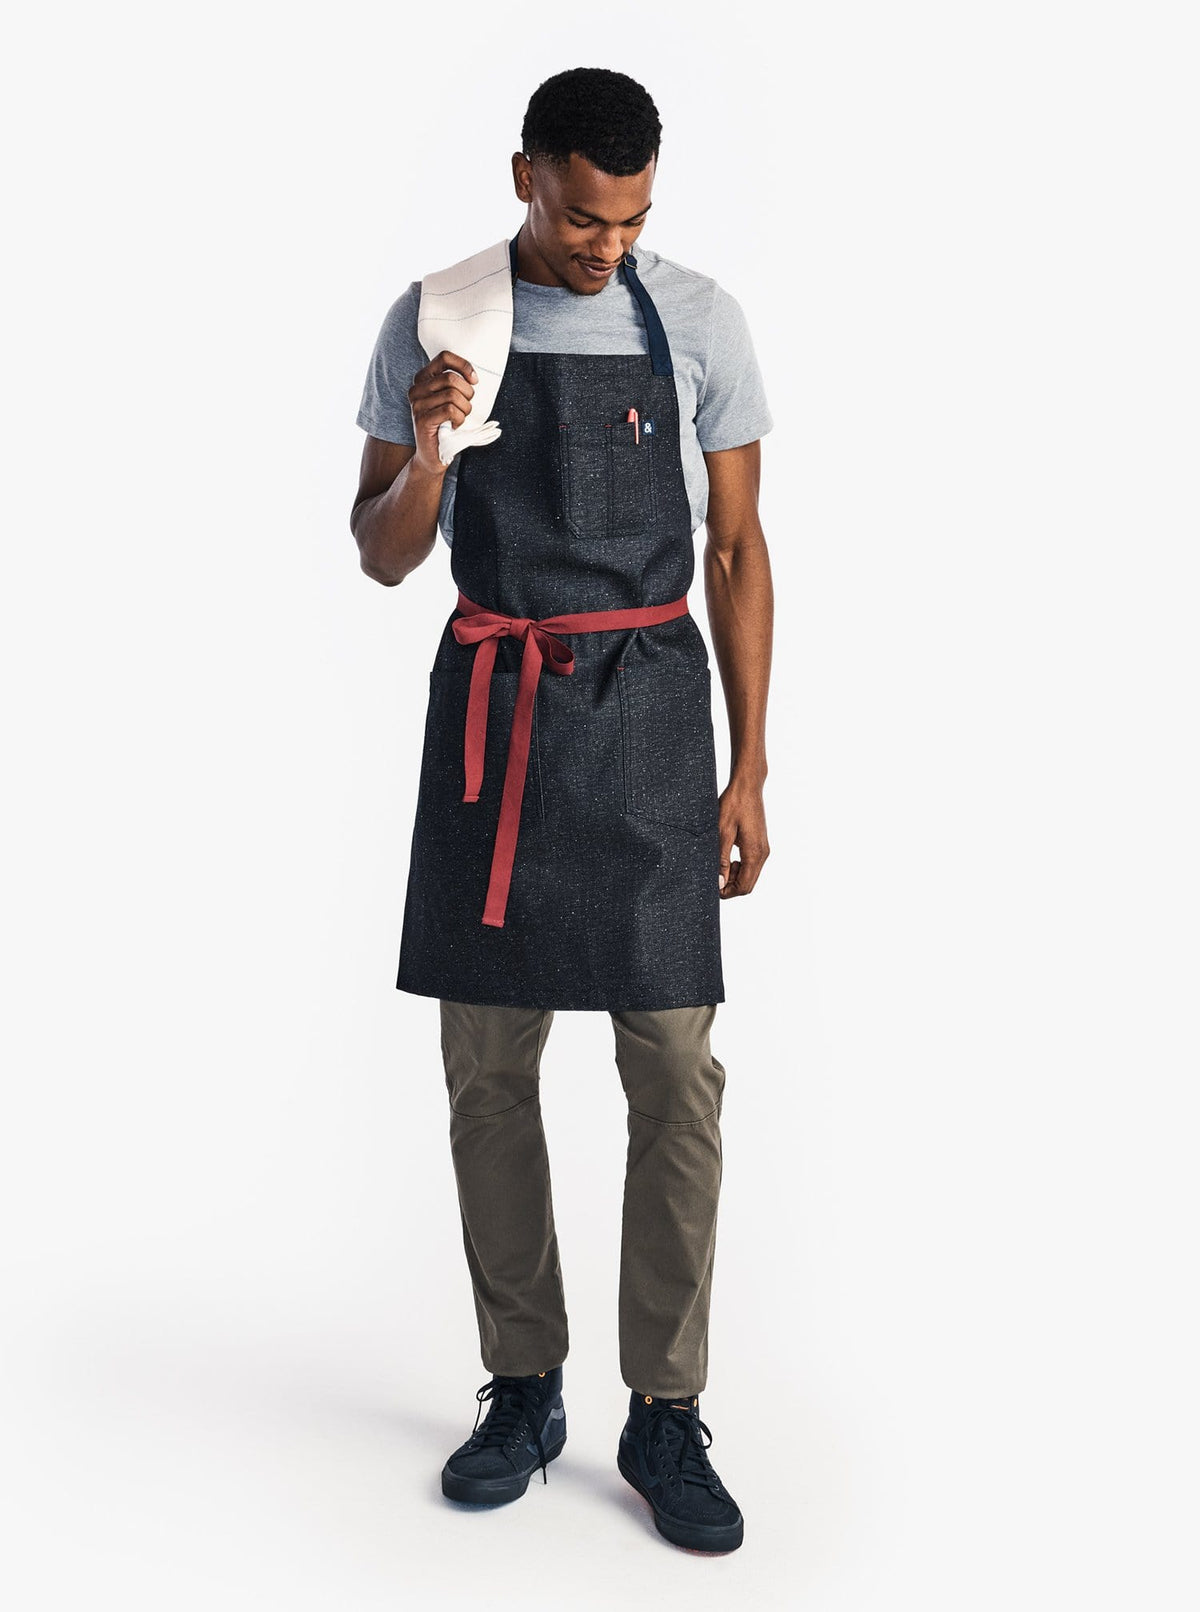 The Essential Apron - Blackberry